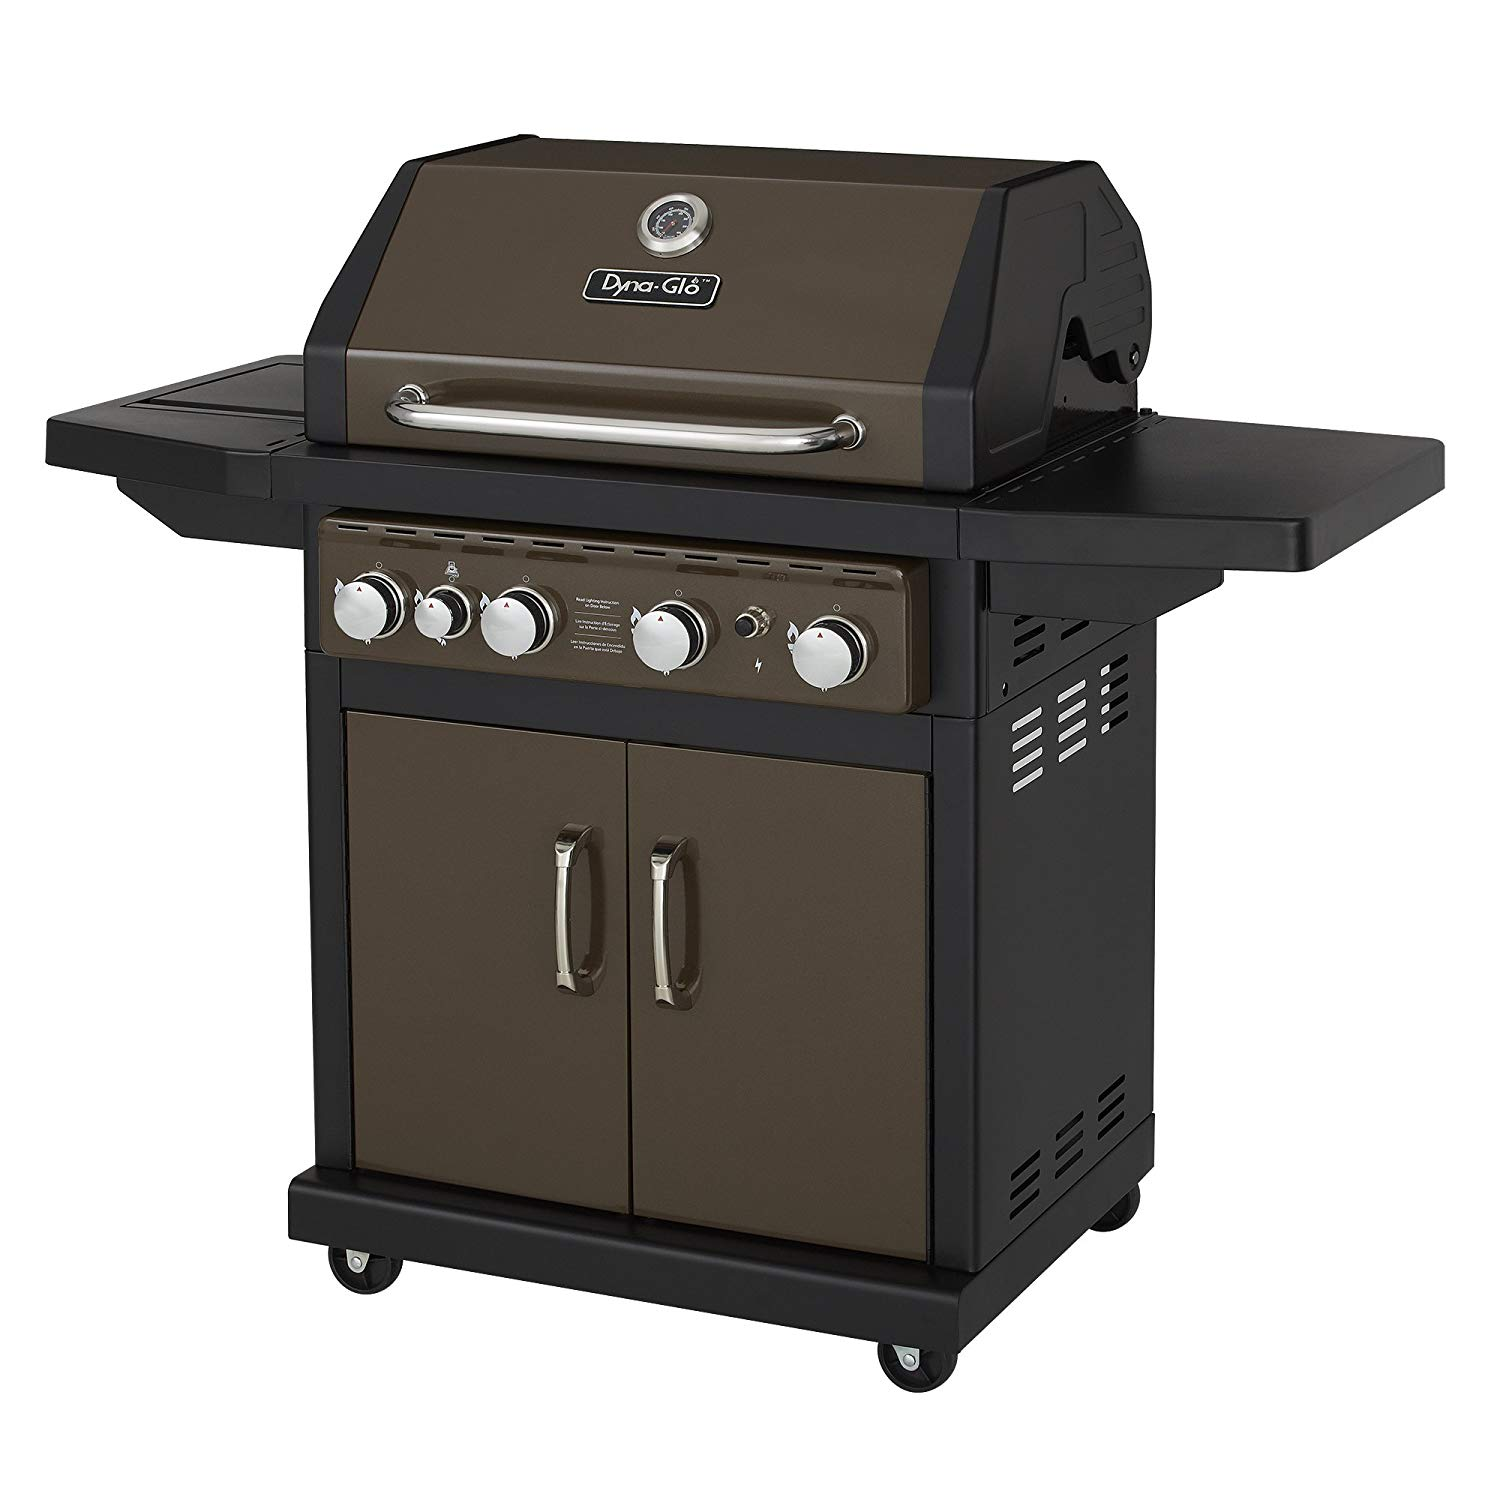 Dyna-Glo Bronze DGA480BSP 4-Burner Propane Gas Grill Review